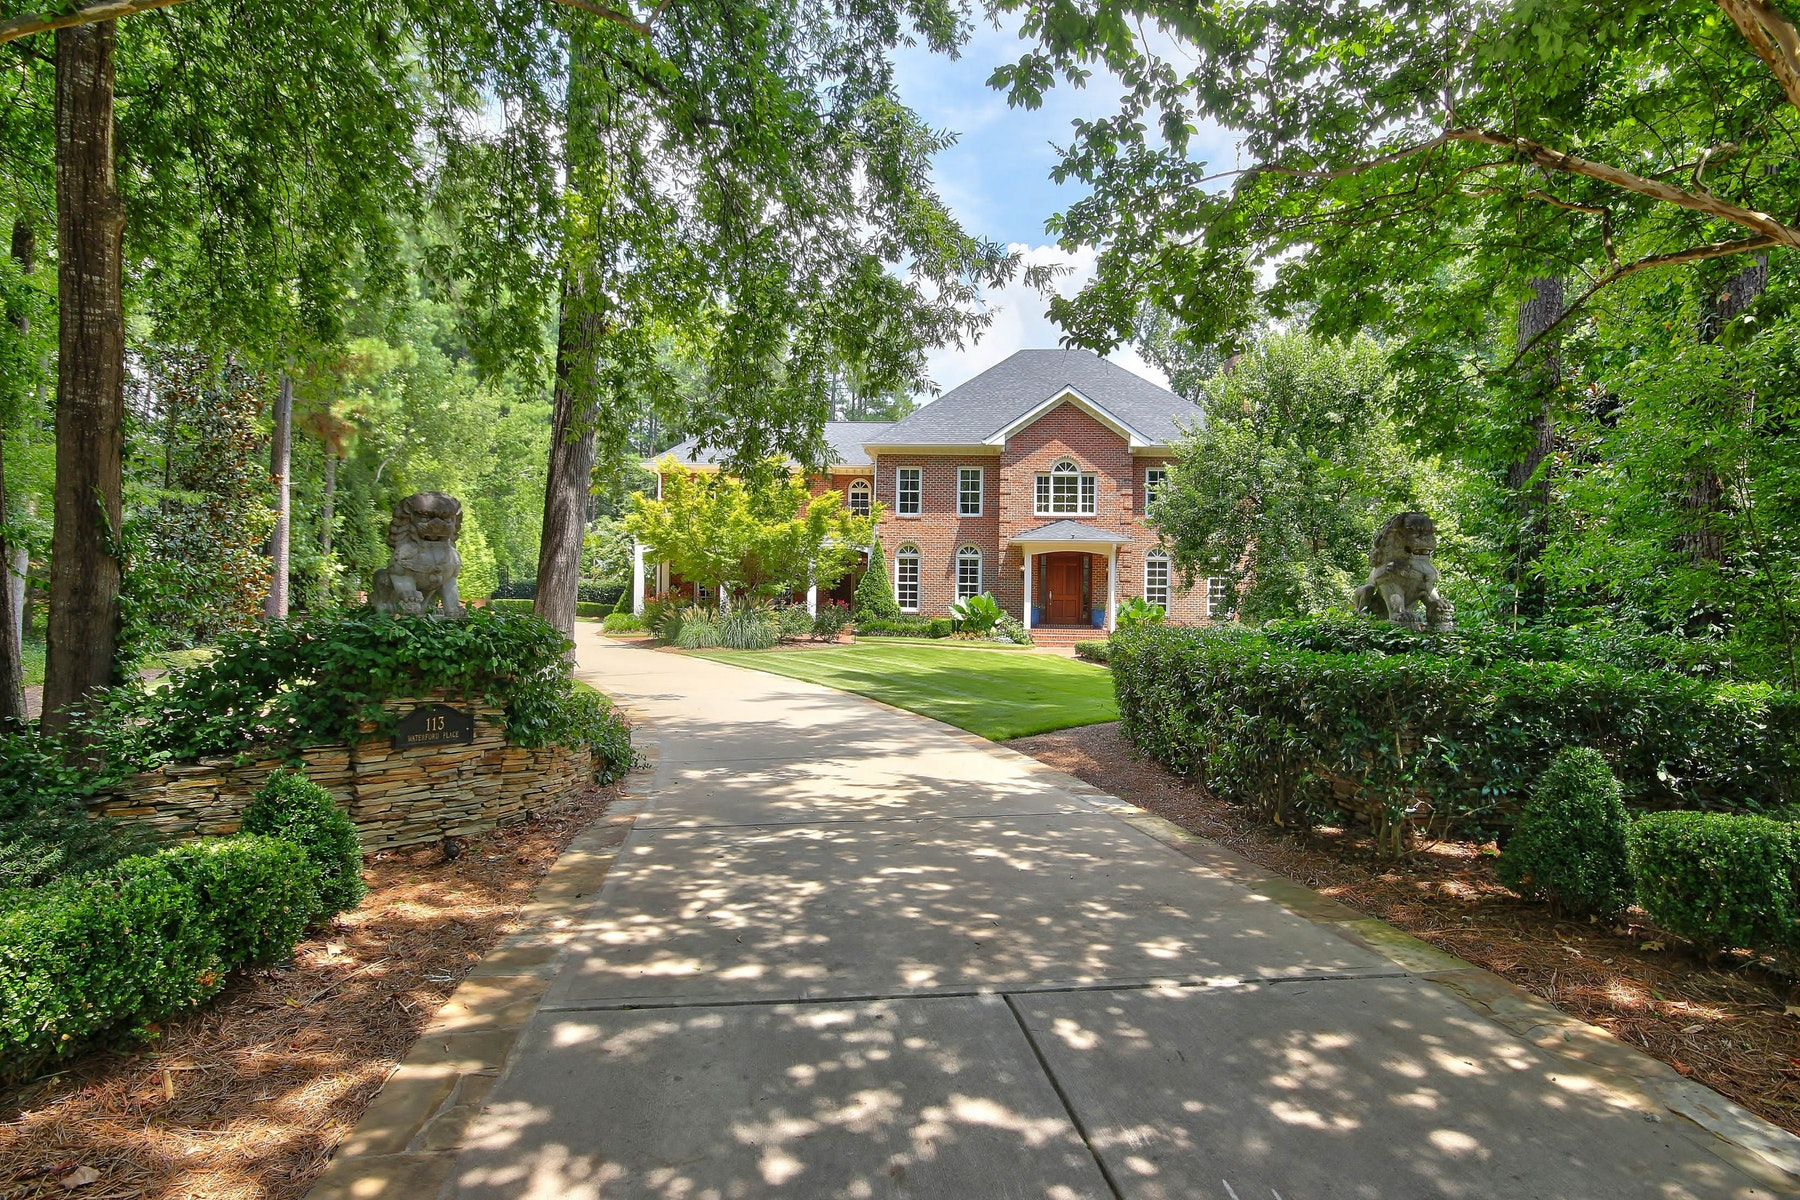 Single Family Home for Sale at Inviting Georgian Brick Home in The Oaks 113 Waterford Place Chapel Hill, North Carolina 27517 United States